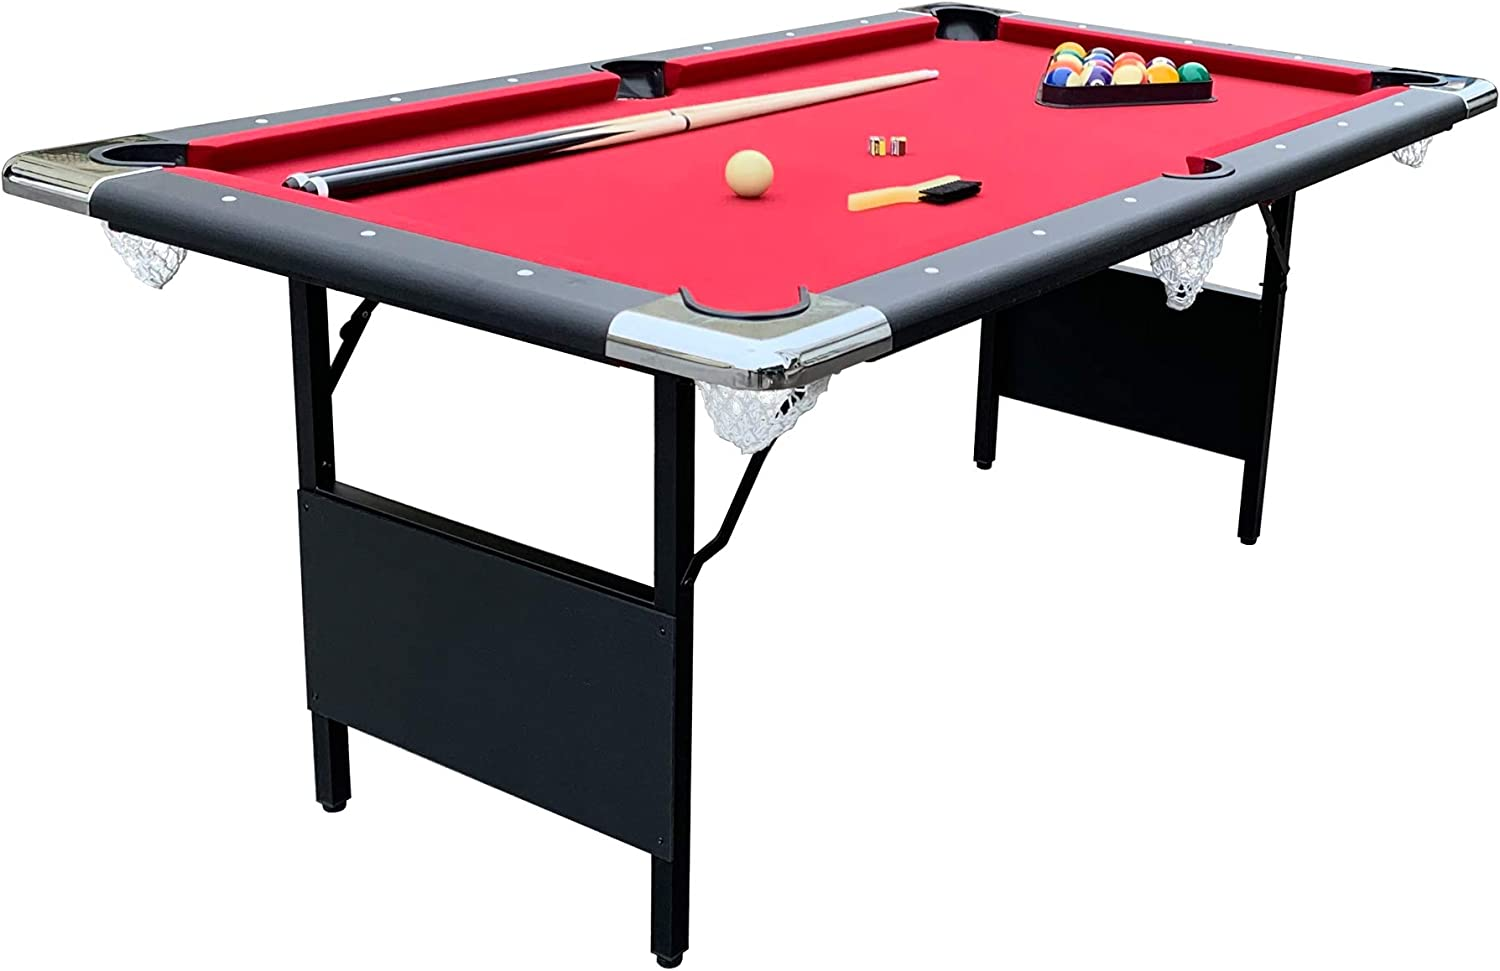 Hathaway Fairmont Portable Pool Table 6-Ft